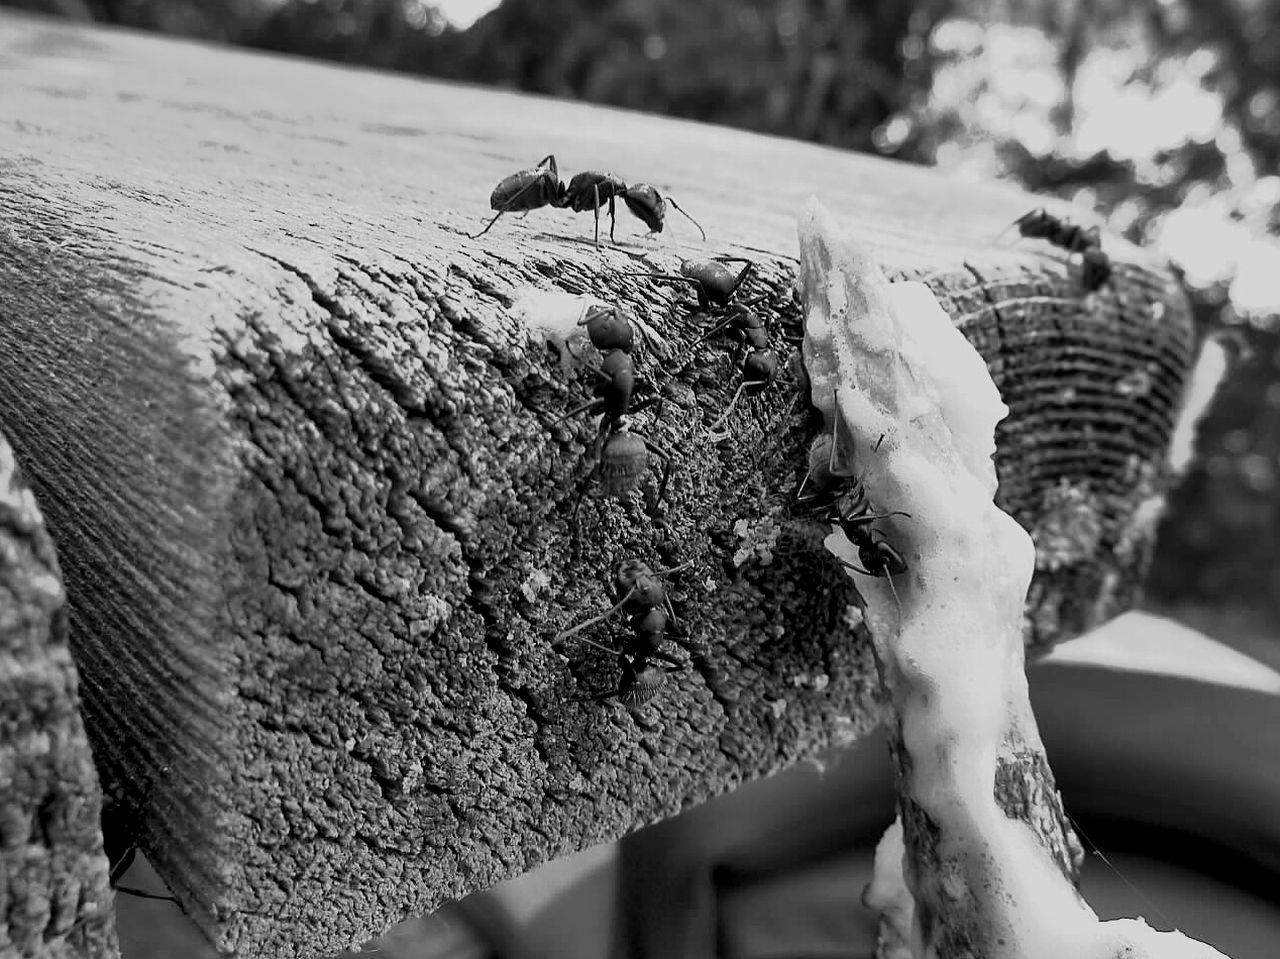 Close-Up Of Ants On Wooden Plank